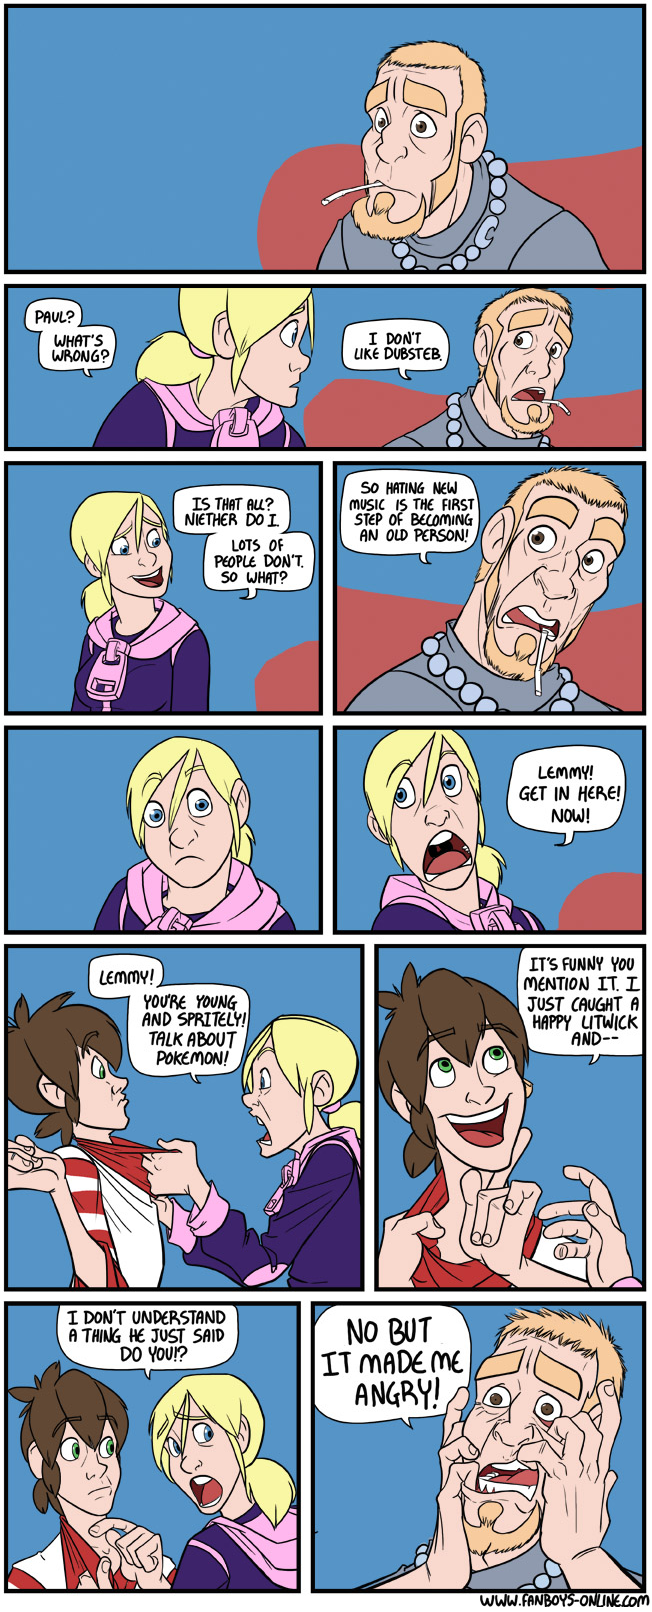 Funny Pokemon Black And White Comics boyfriend & girlfriend find out they are getting old with